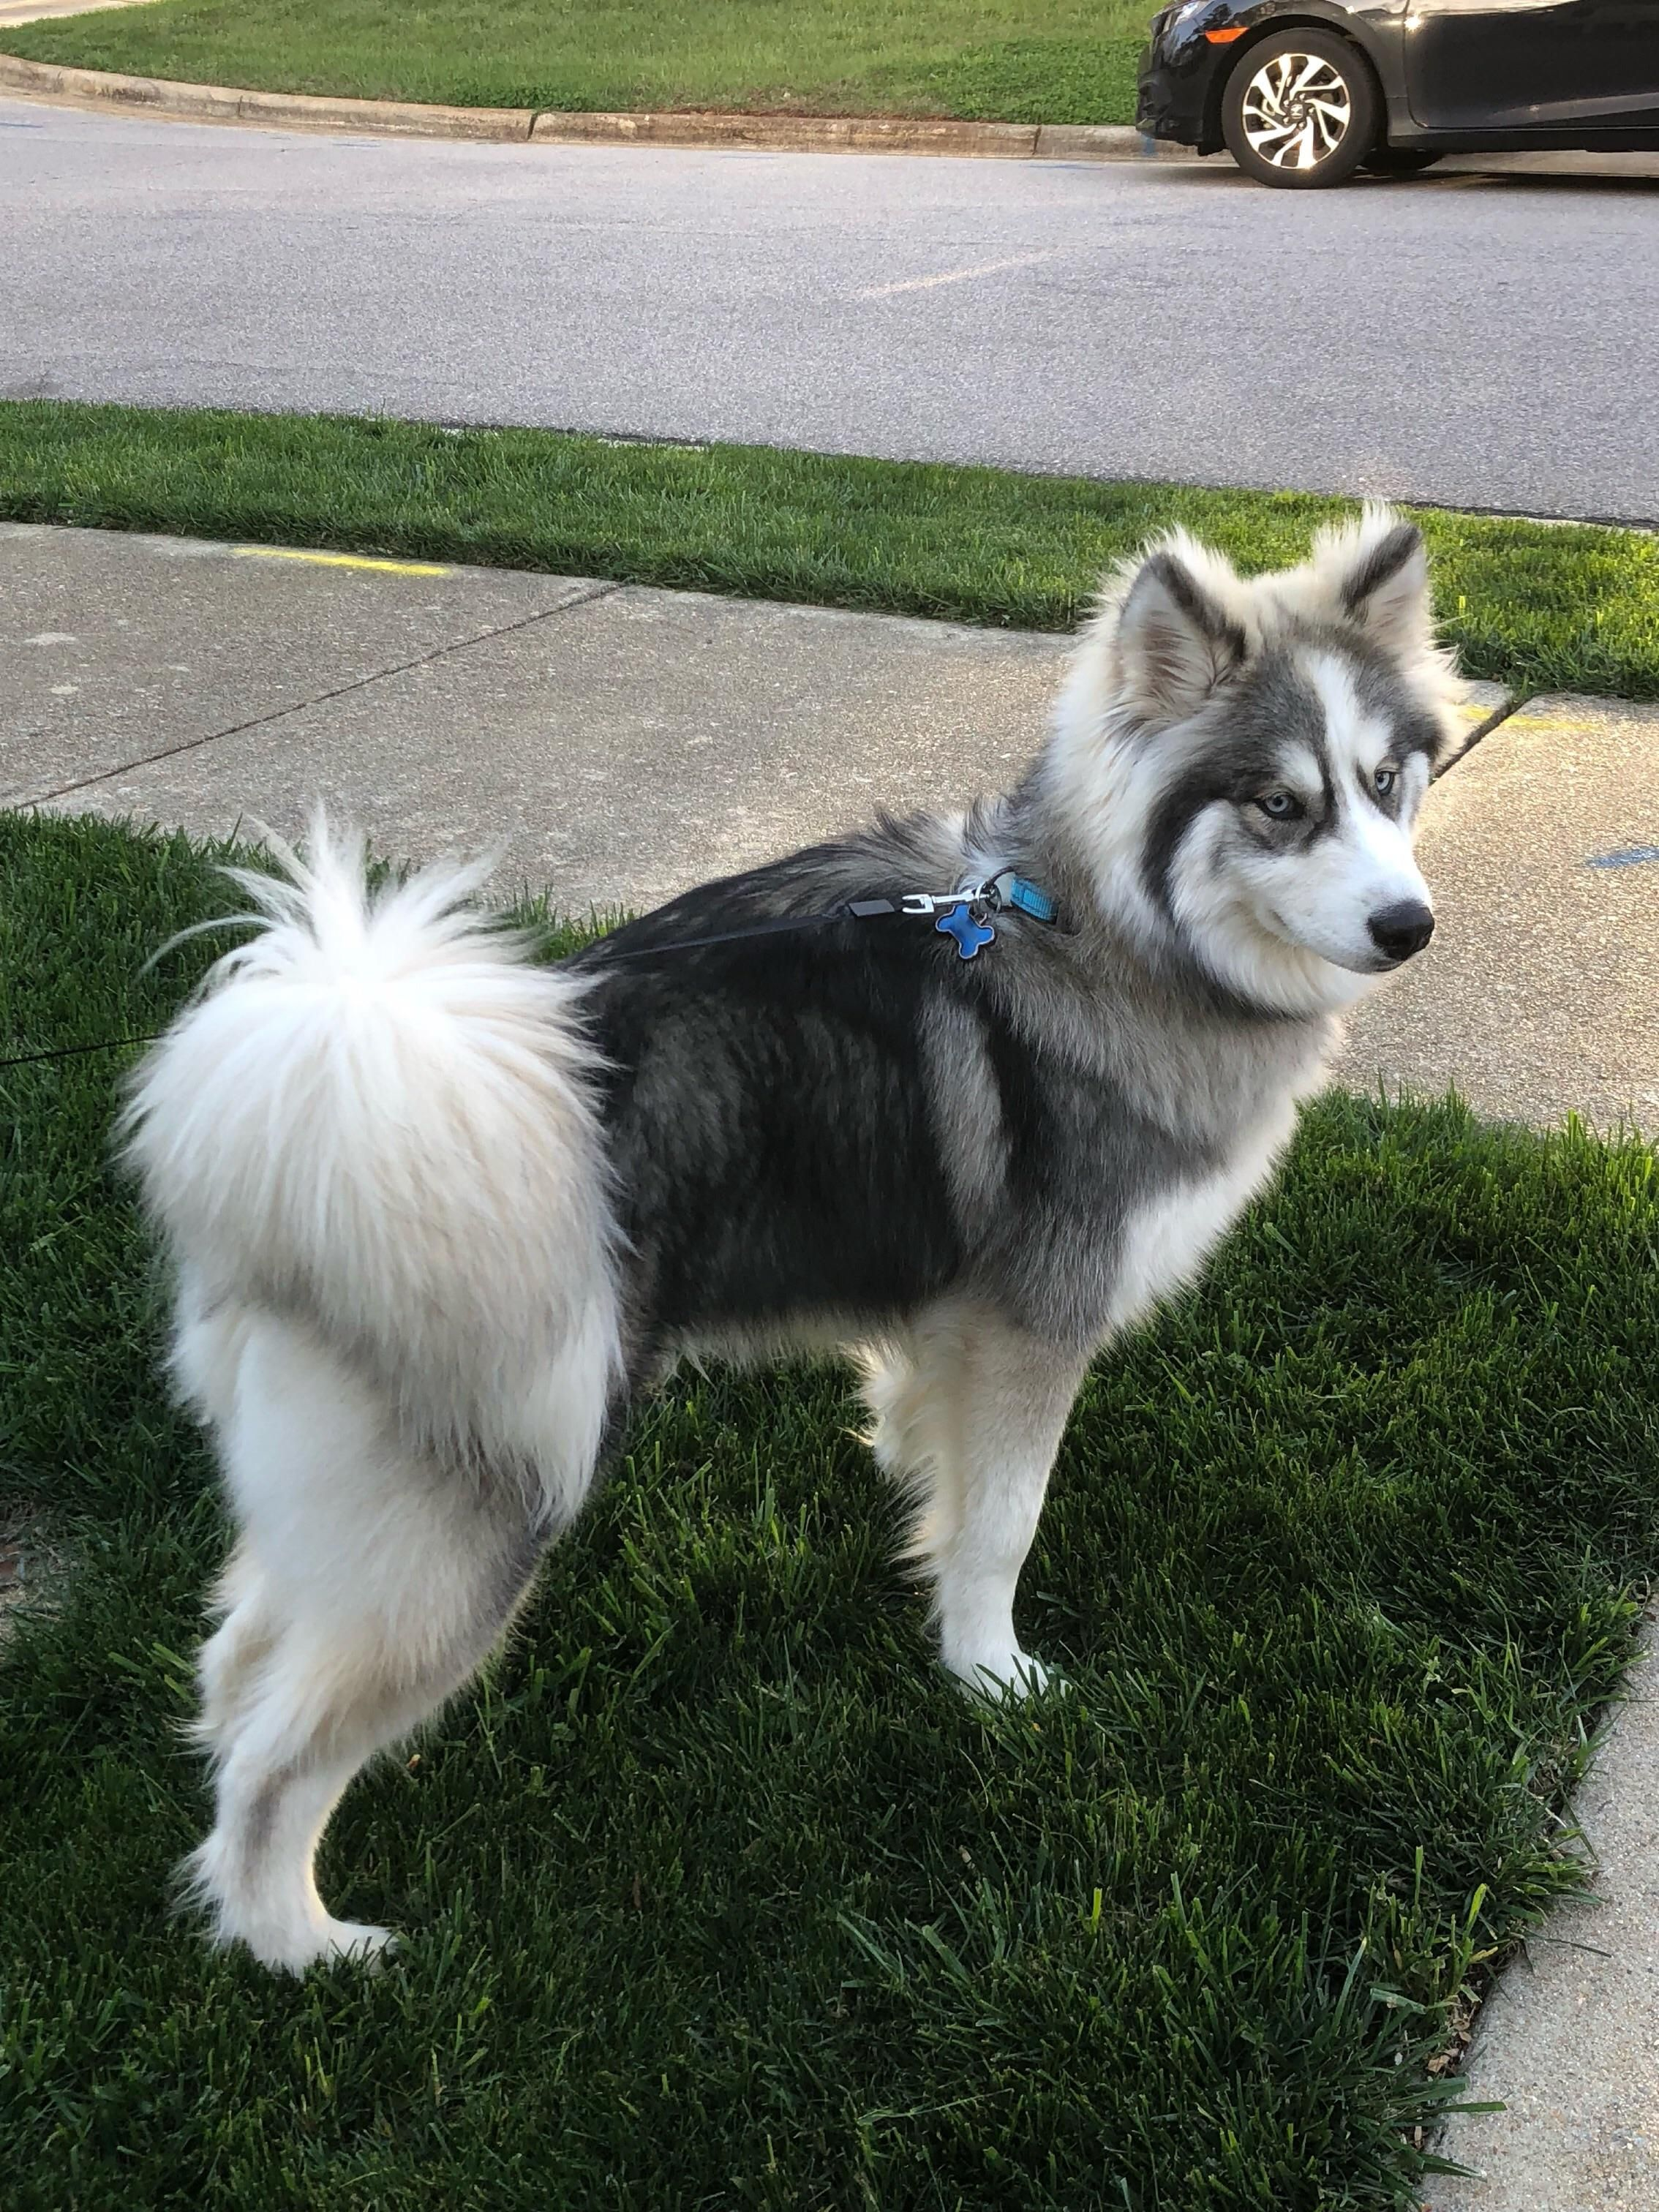 Majestic Boy Getting Ready For A Walk Https Ift Tt 2mipbhc Malamute Puppies Wolf Dog Dog Breeds